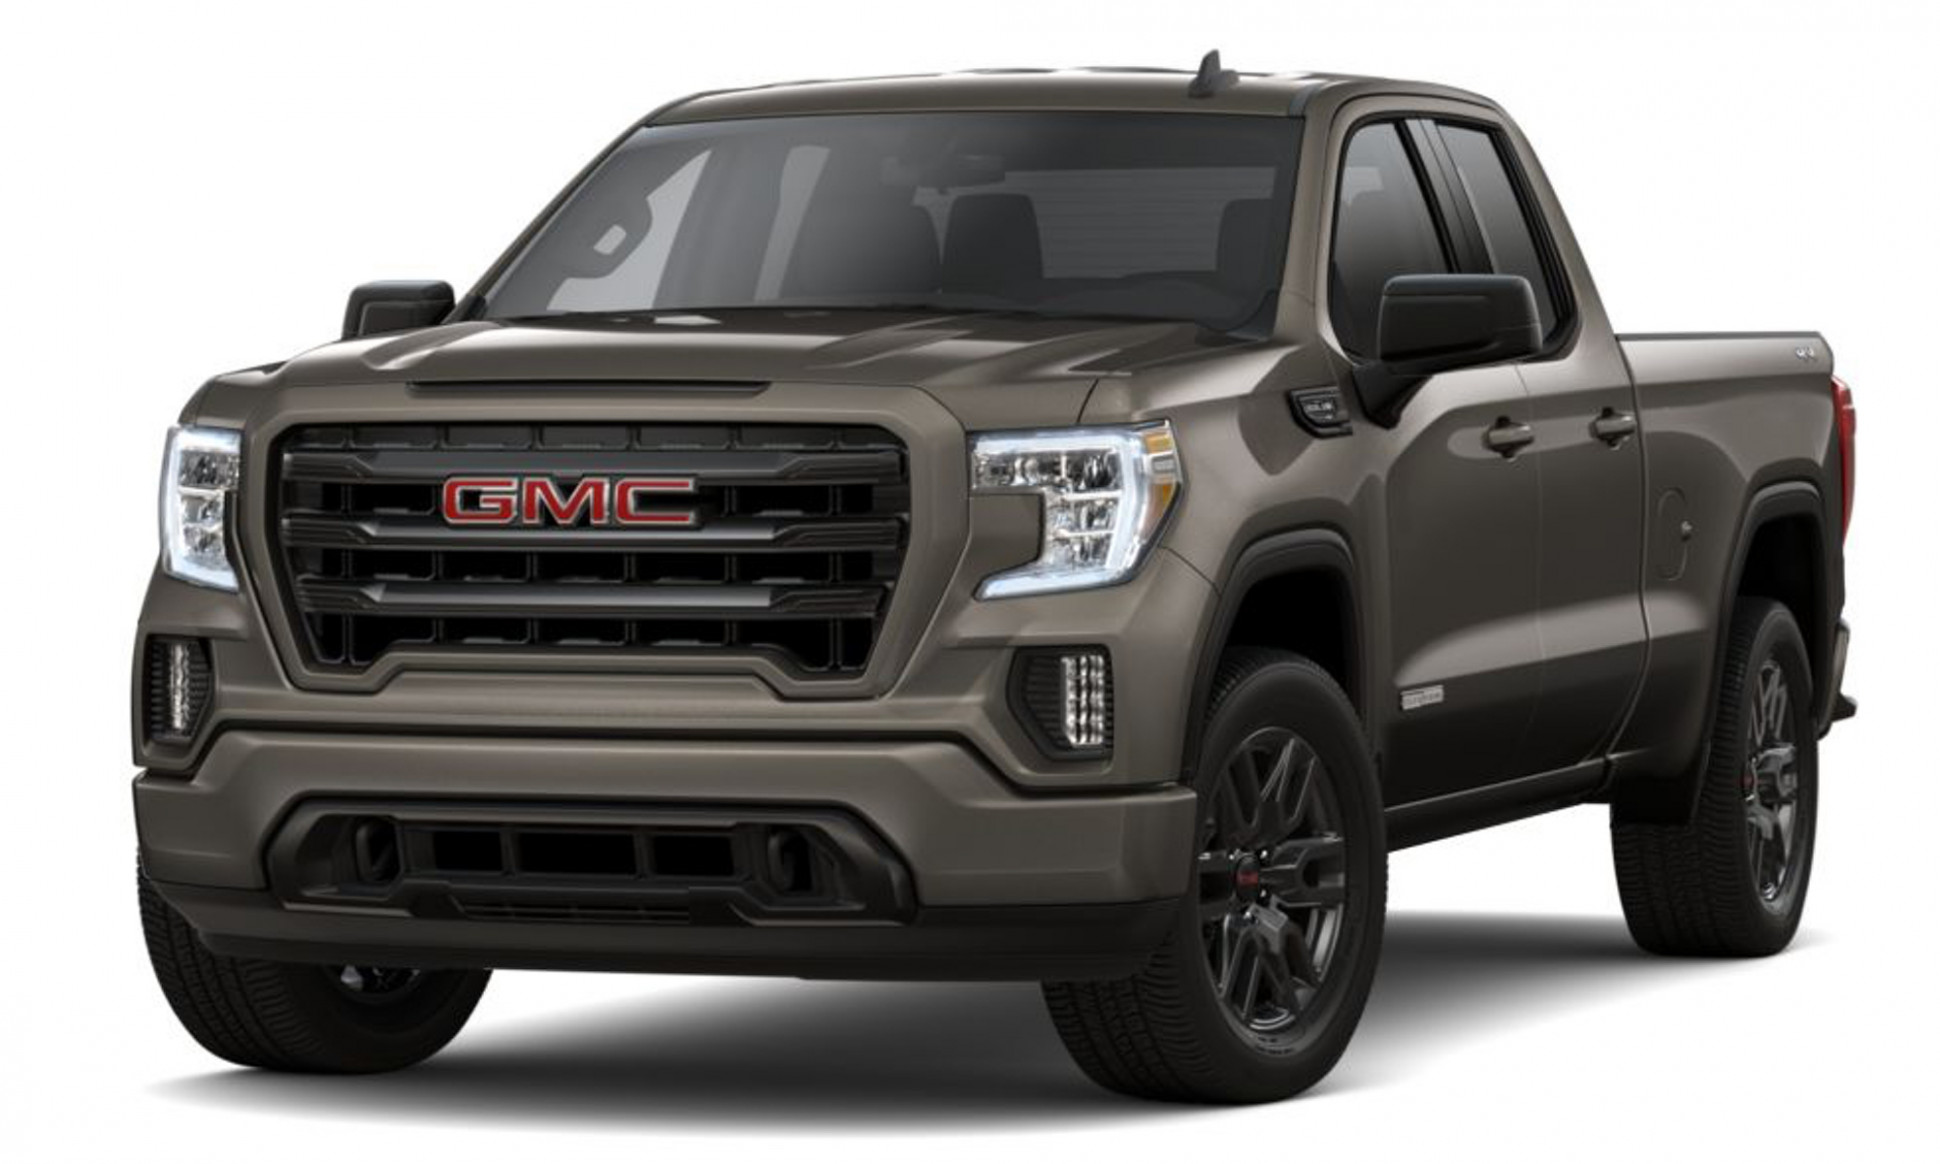 9 Sierra 9 Ditches This Paint Option, Gains New One | GM ...